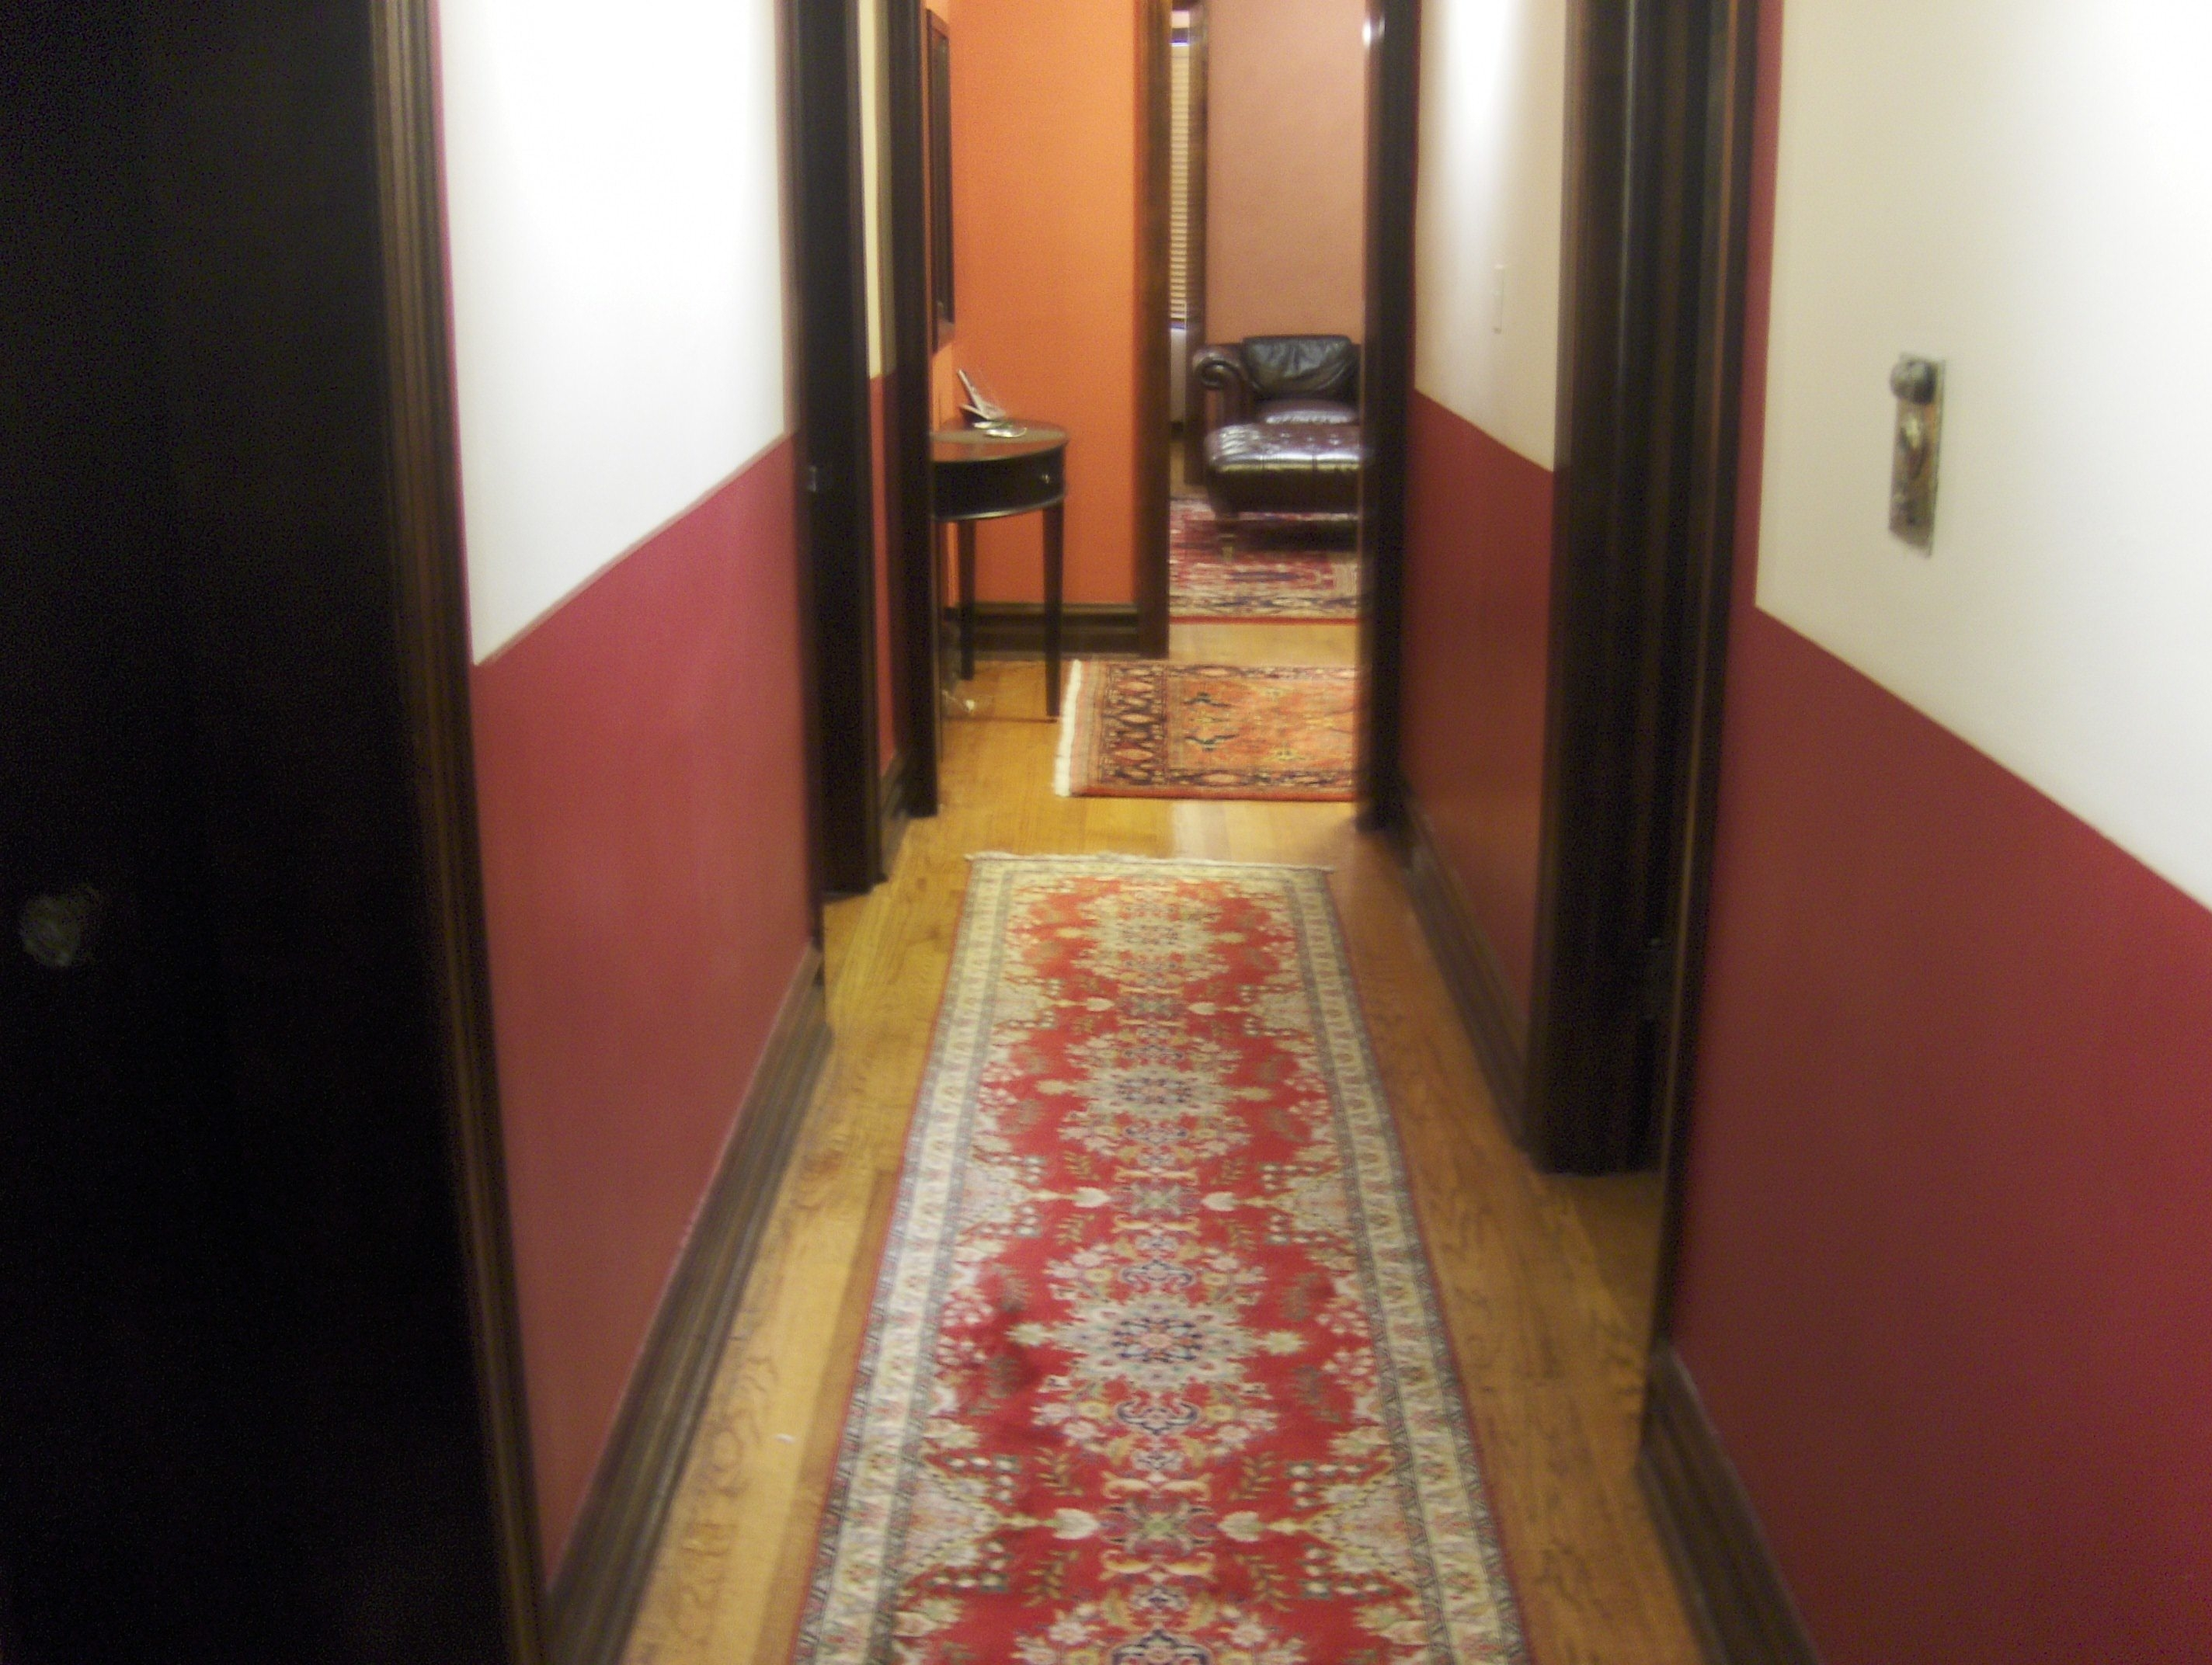 Inspiration about 6 Places To Decorate With Runner Rugs Catalina Rug Throughout Runner Rugs For Long Hallway (#16 of 20)